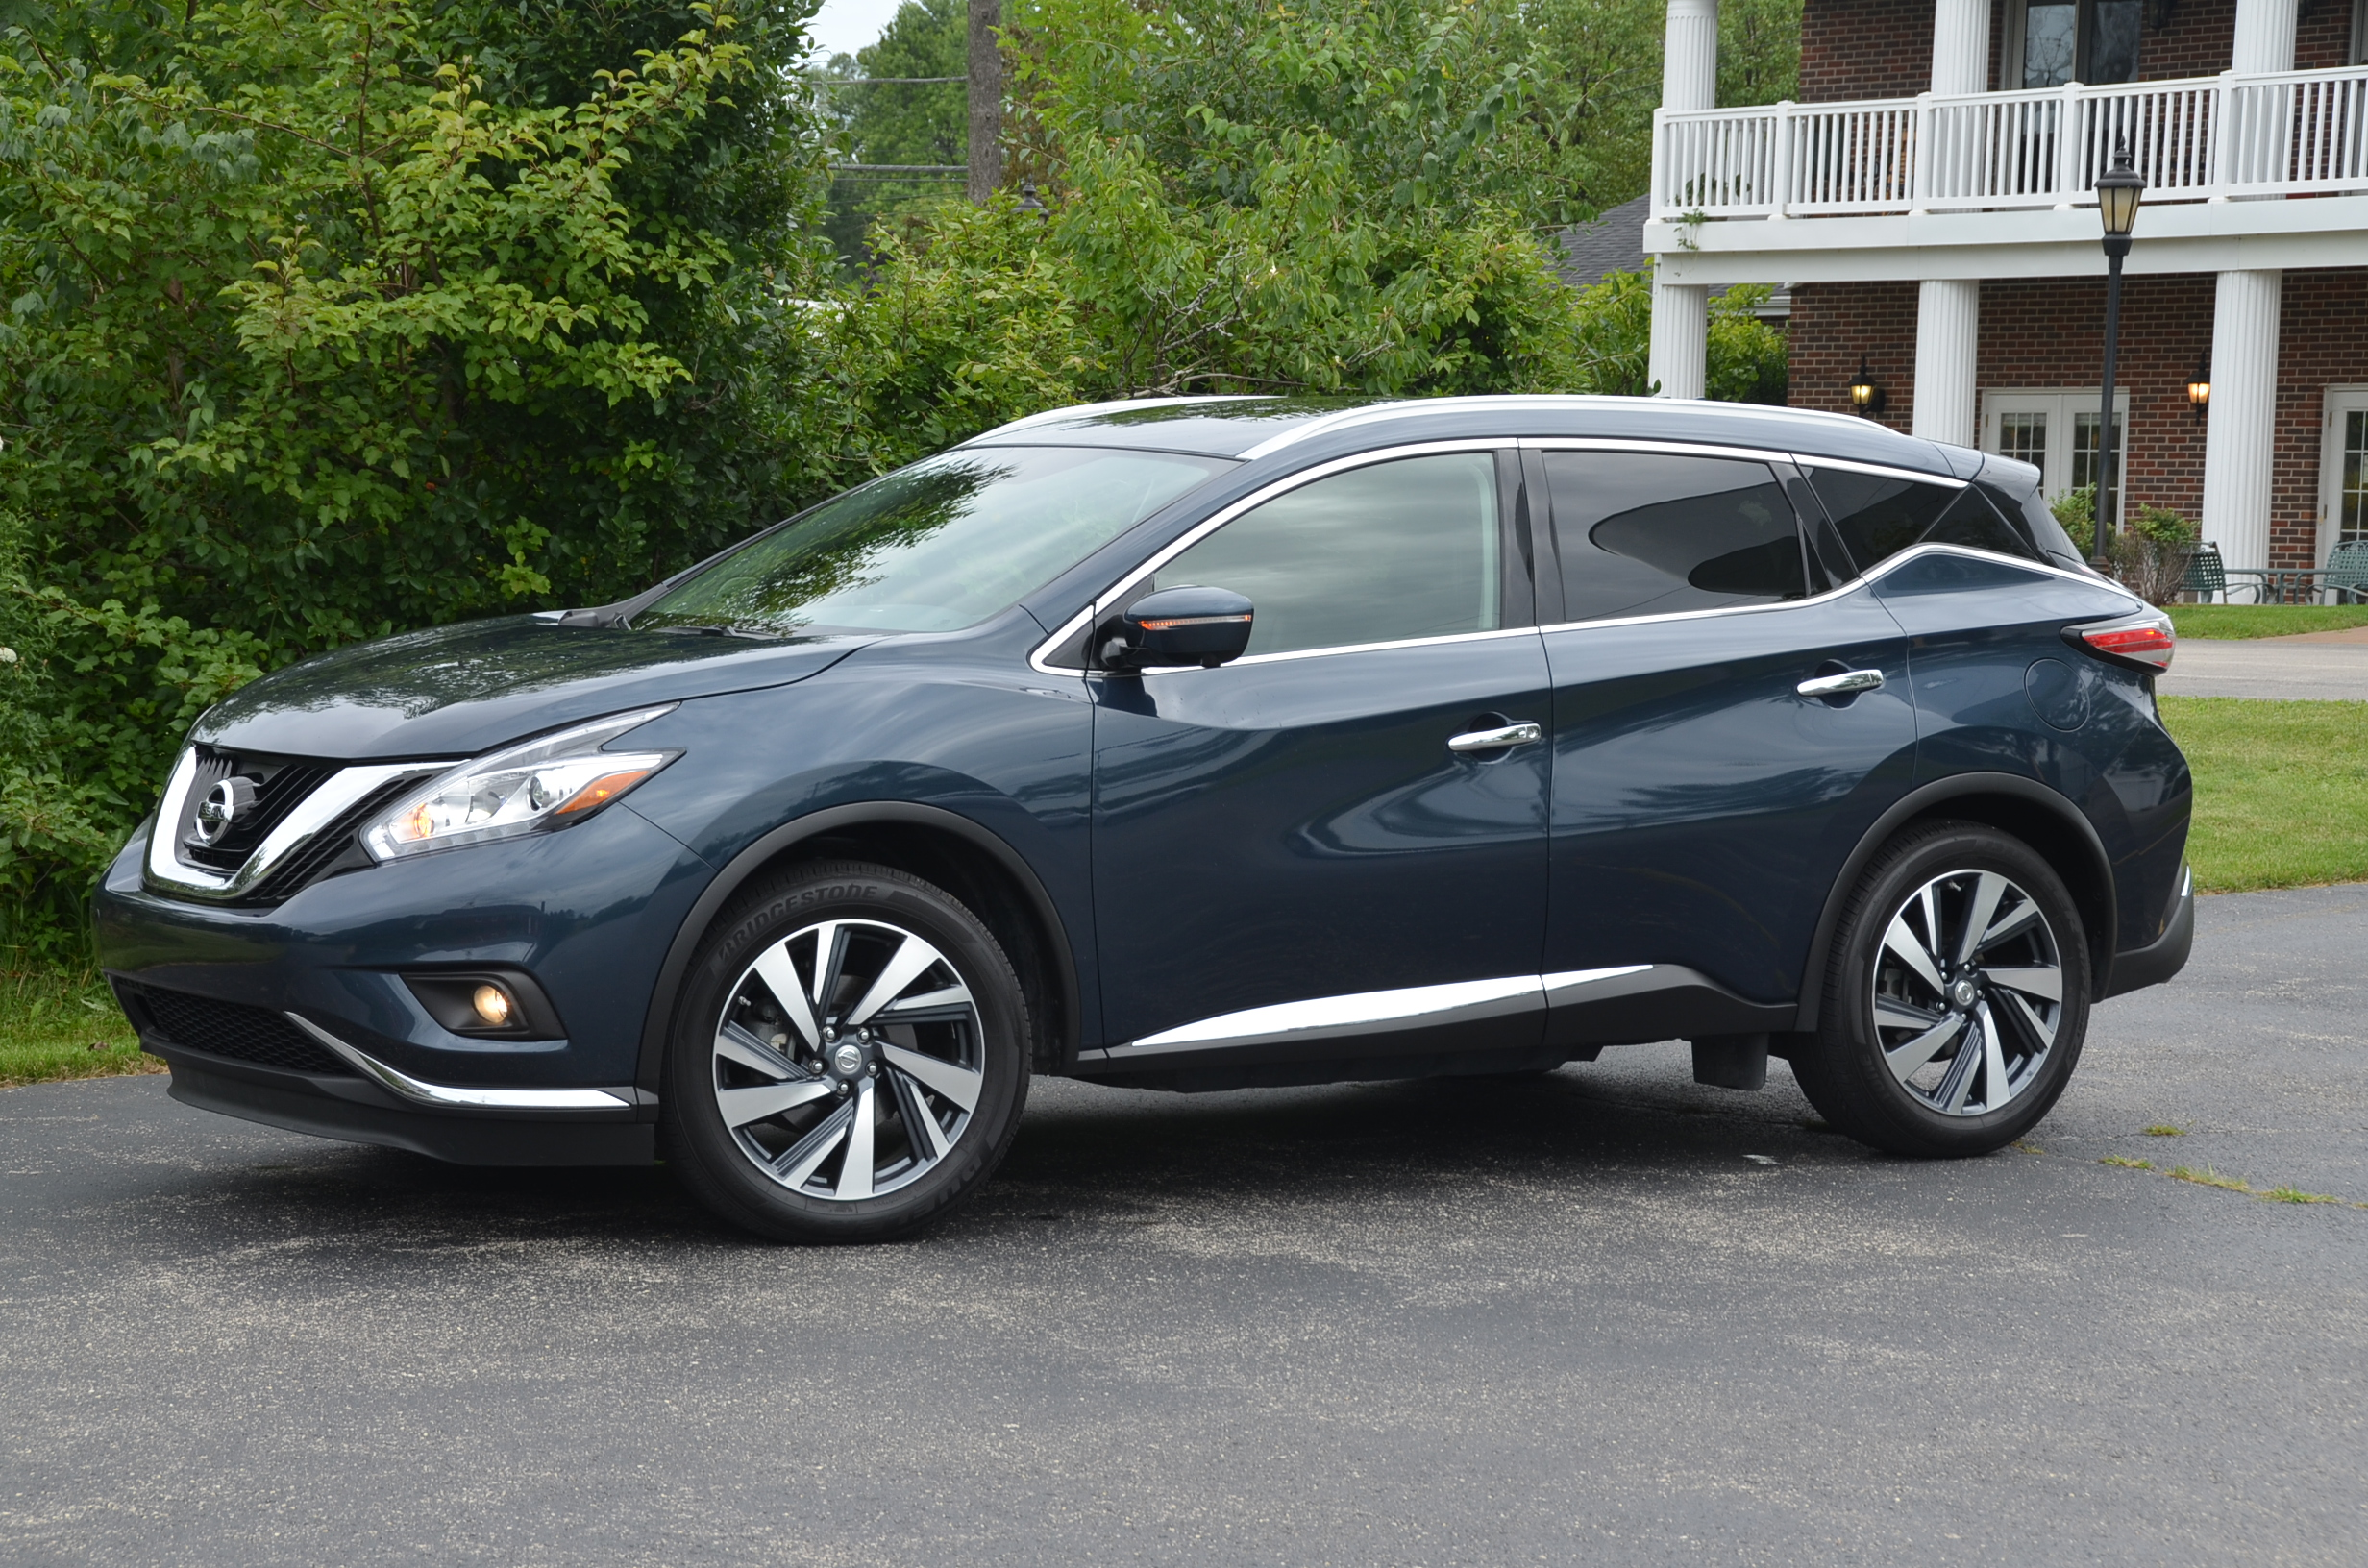 img convertible murano vehicles crossover sold now nissan sale cabriolet automatic for